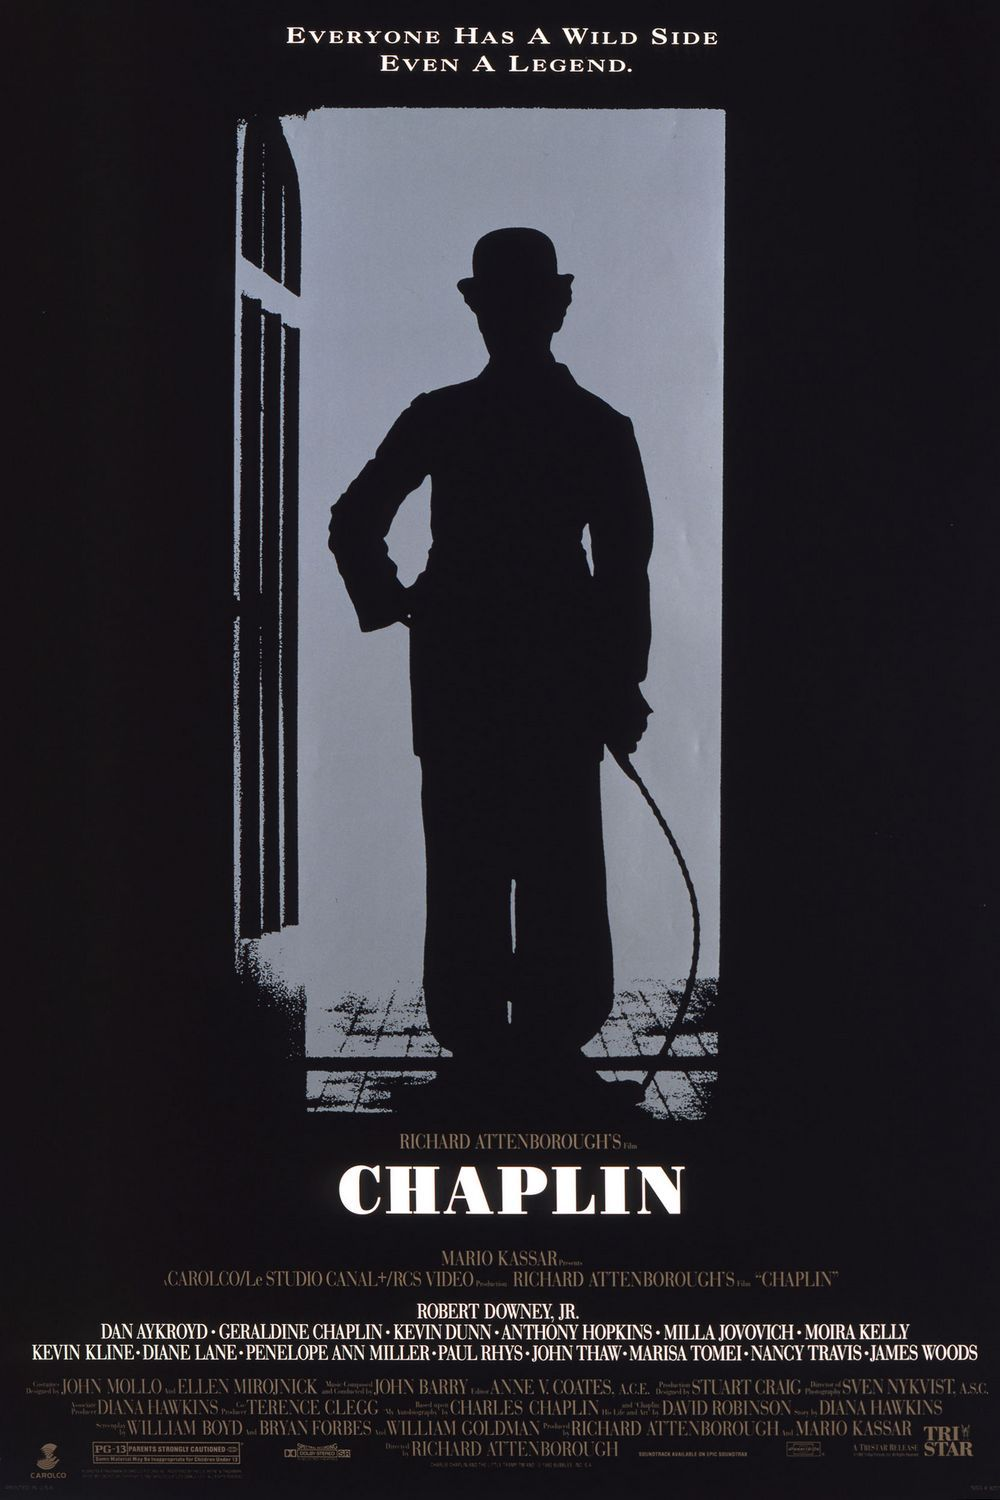 Chaplin - life documentary 1992 - Cast: Robert Downey Jr., Geraldine Chaplin, Paul Rhys, John Thaw - film poster